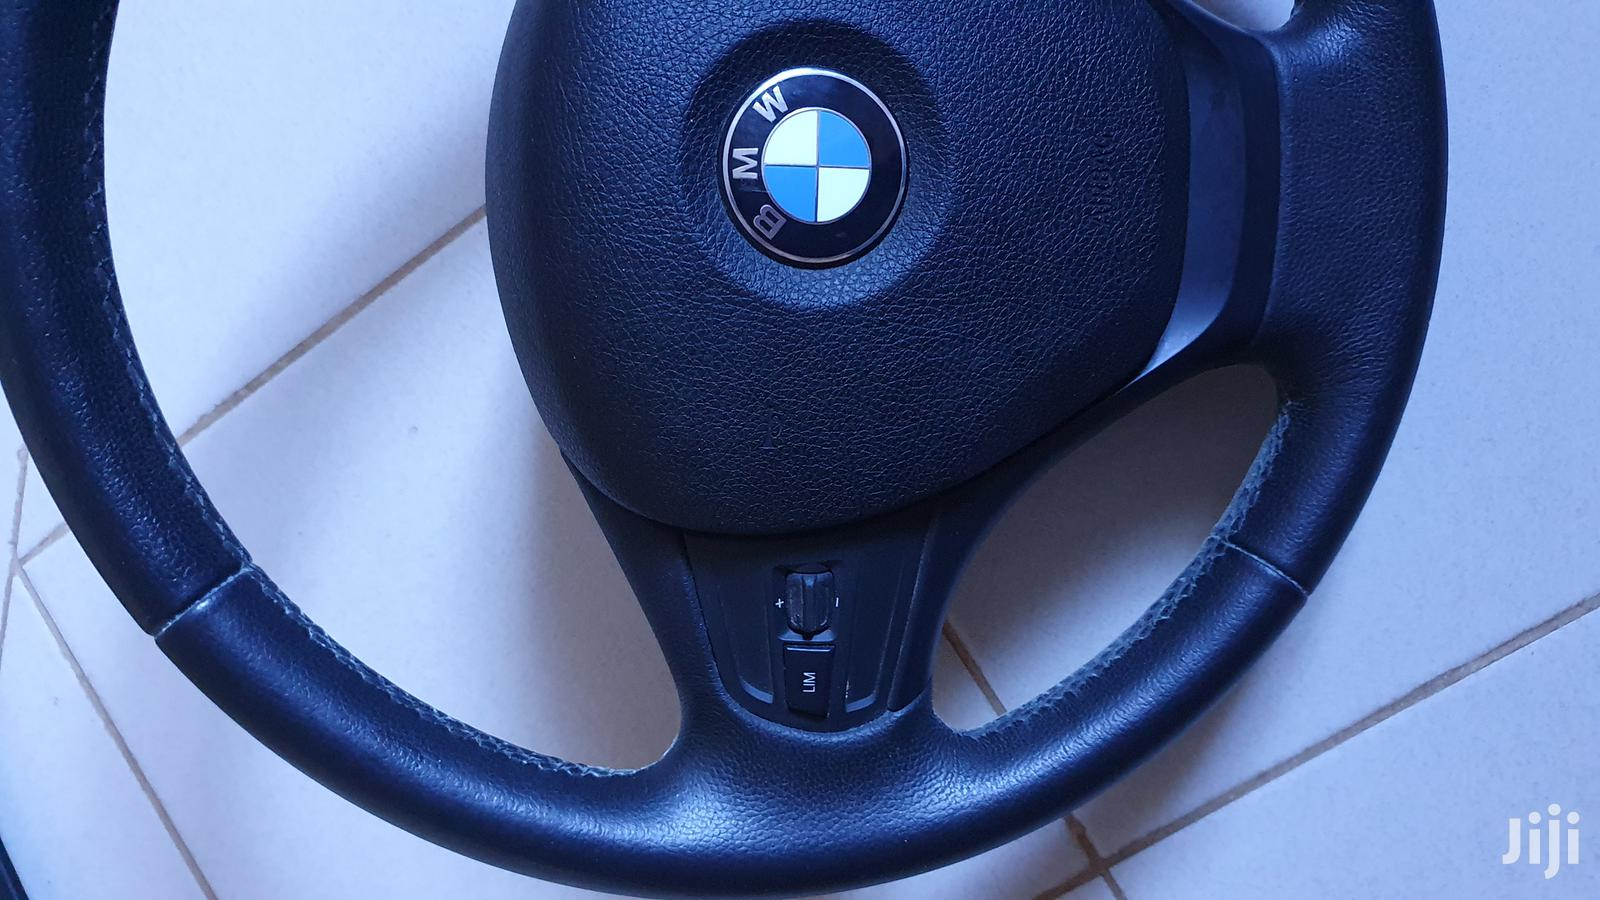 Archive: BMW F25 F30 Steering Wheel With Airbag